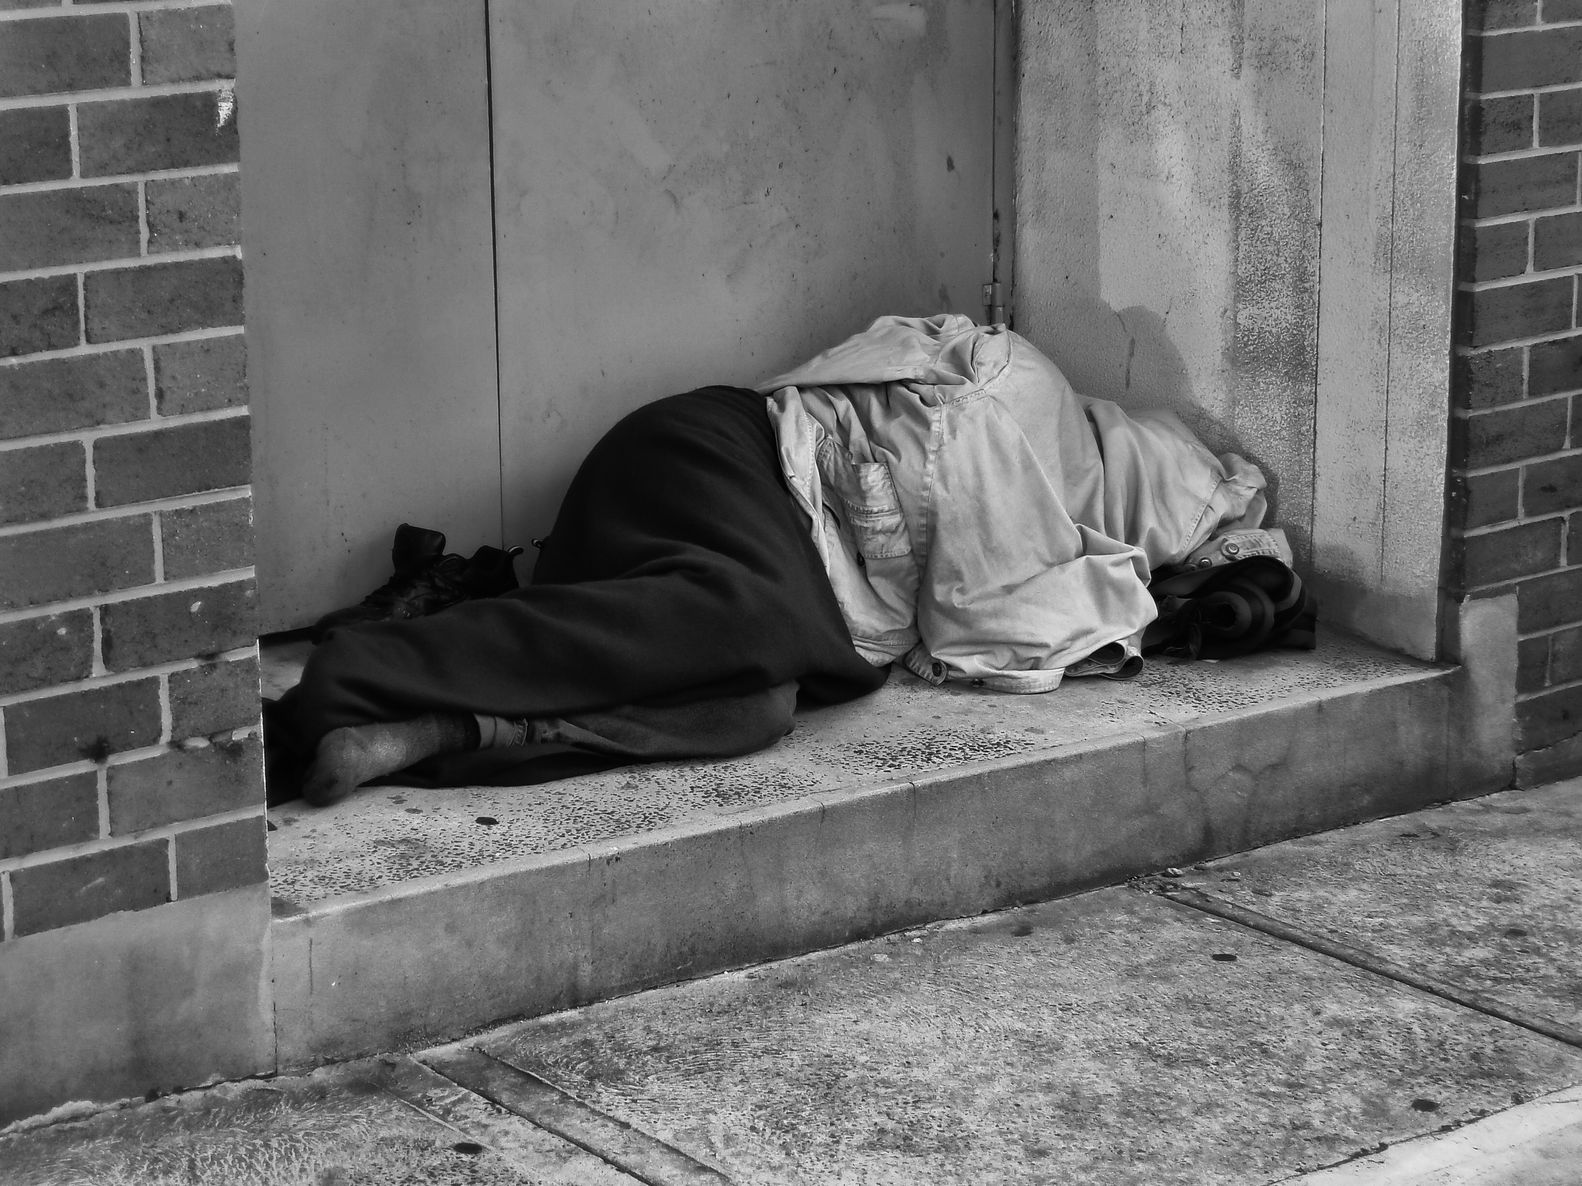 What does it Cost to Help the Massachusetts Homeless